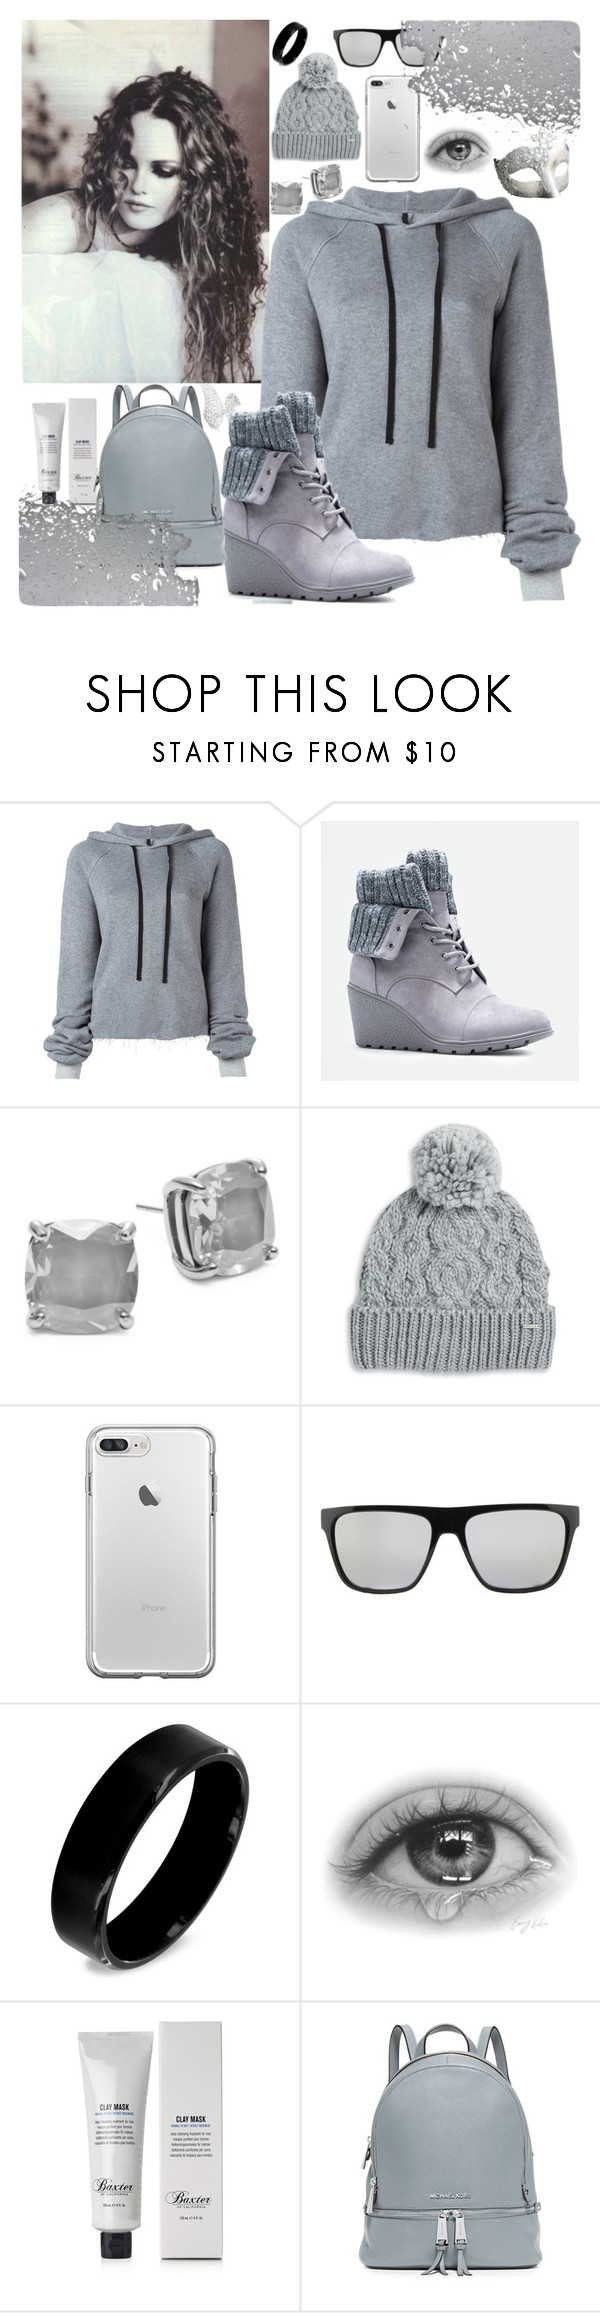 """""""grey"""" by amila-lugavic ❤ liked on Polyvore featuring Unravel, JustFab, Kate Spade, Rella, Puma, West Coast Jewelry, Baxter of California, MICHAEL Michael Kors and Messika"""